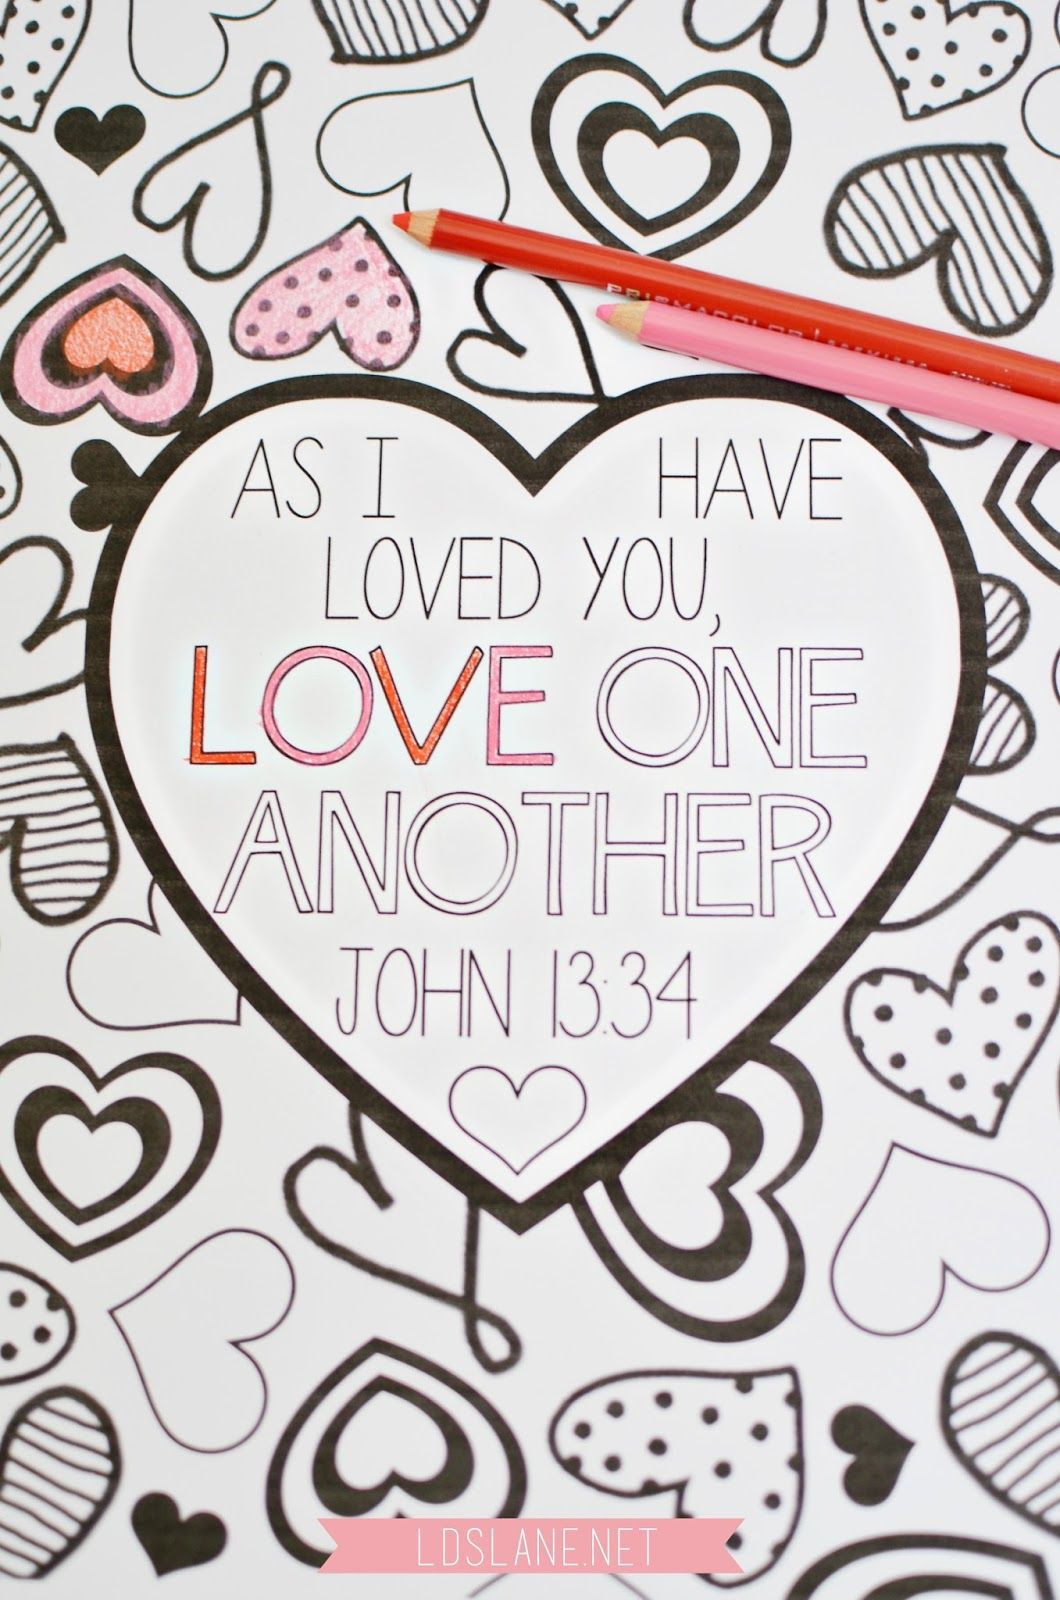 Scripture Coloring Page Love One Another Free Print At Ldslane Net Valentines Day Coloring Page Valentine Coloring Pages Coloring Pages